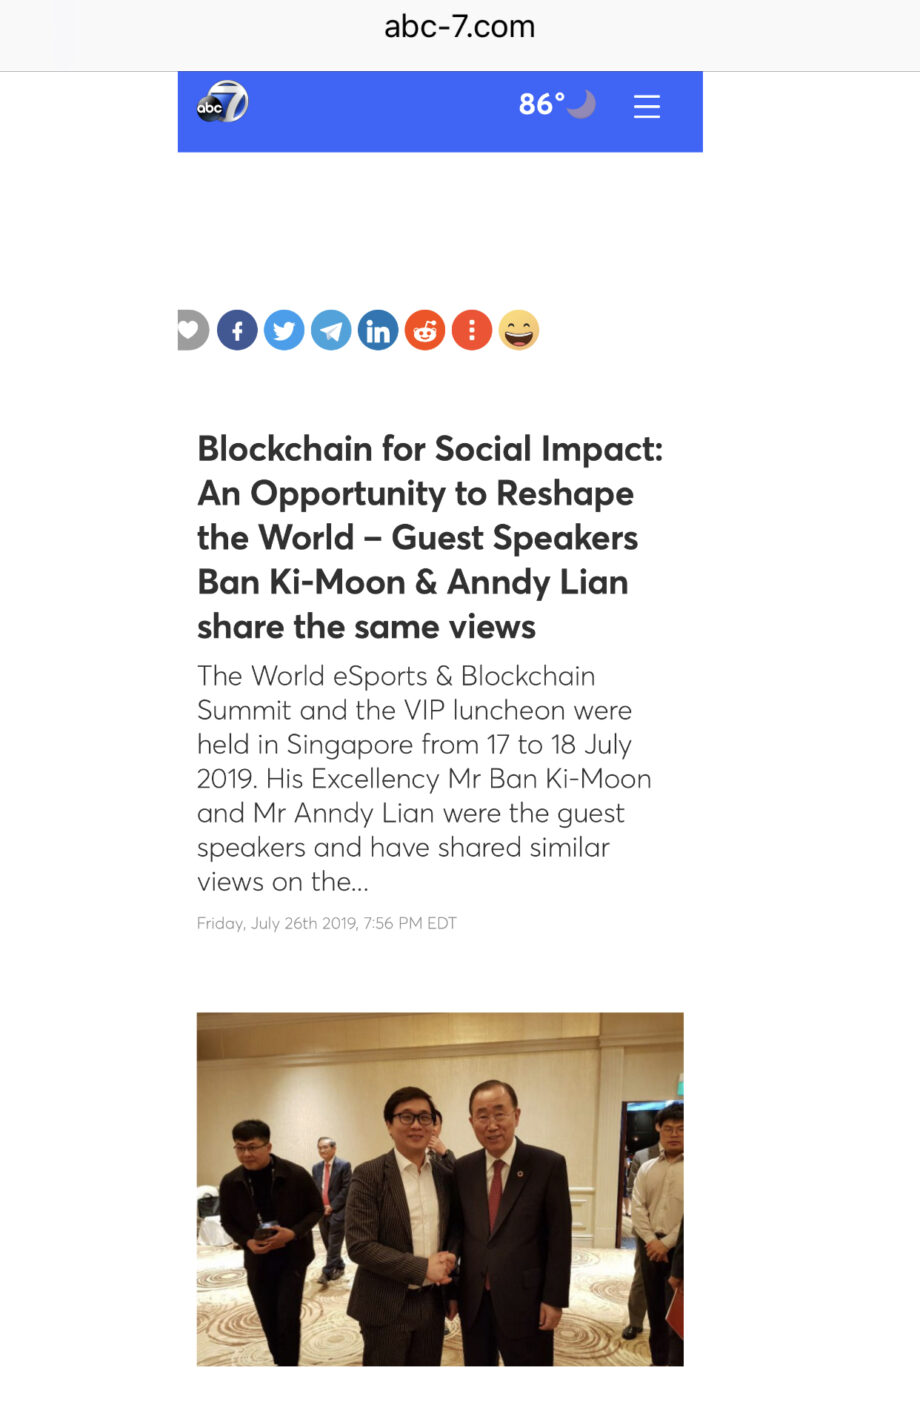 [ABC News] Blockchain for Social Impact: An Opportunity to Reshape the World- Guest Speakers Ban Ki-Moon & Anndy Lian share the same the views